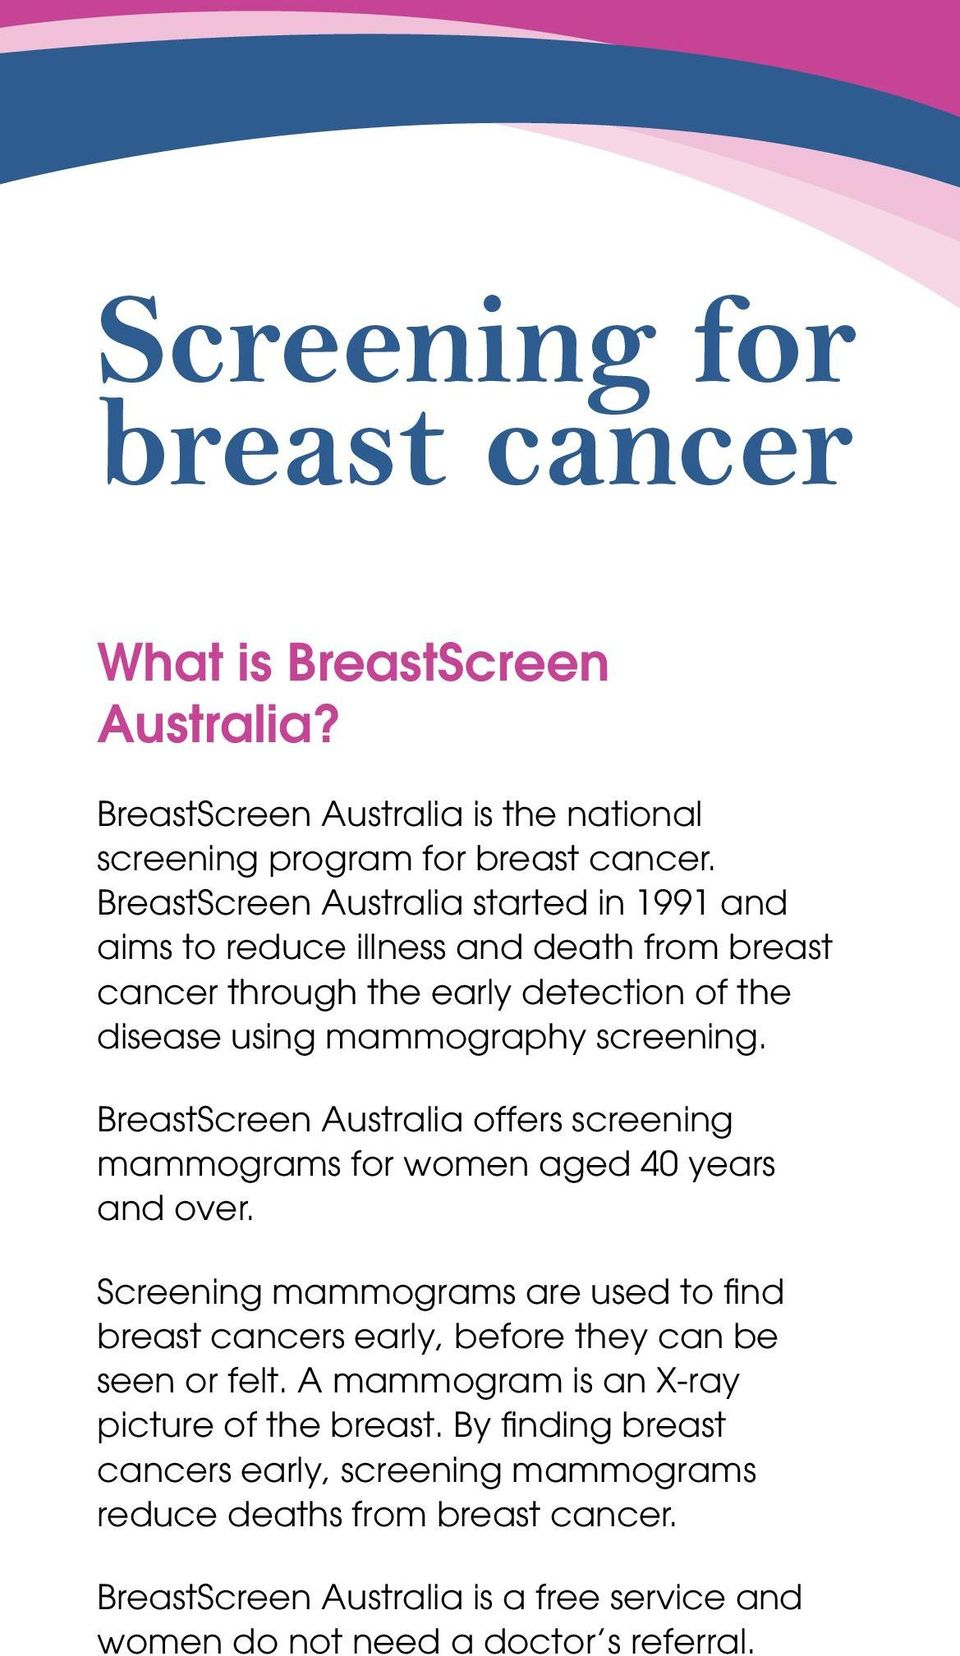 BreastScreen Australia offers screening mammograms for women aged 40 years and over.